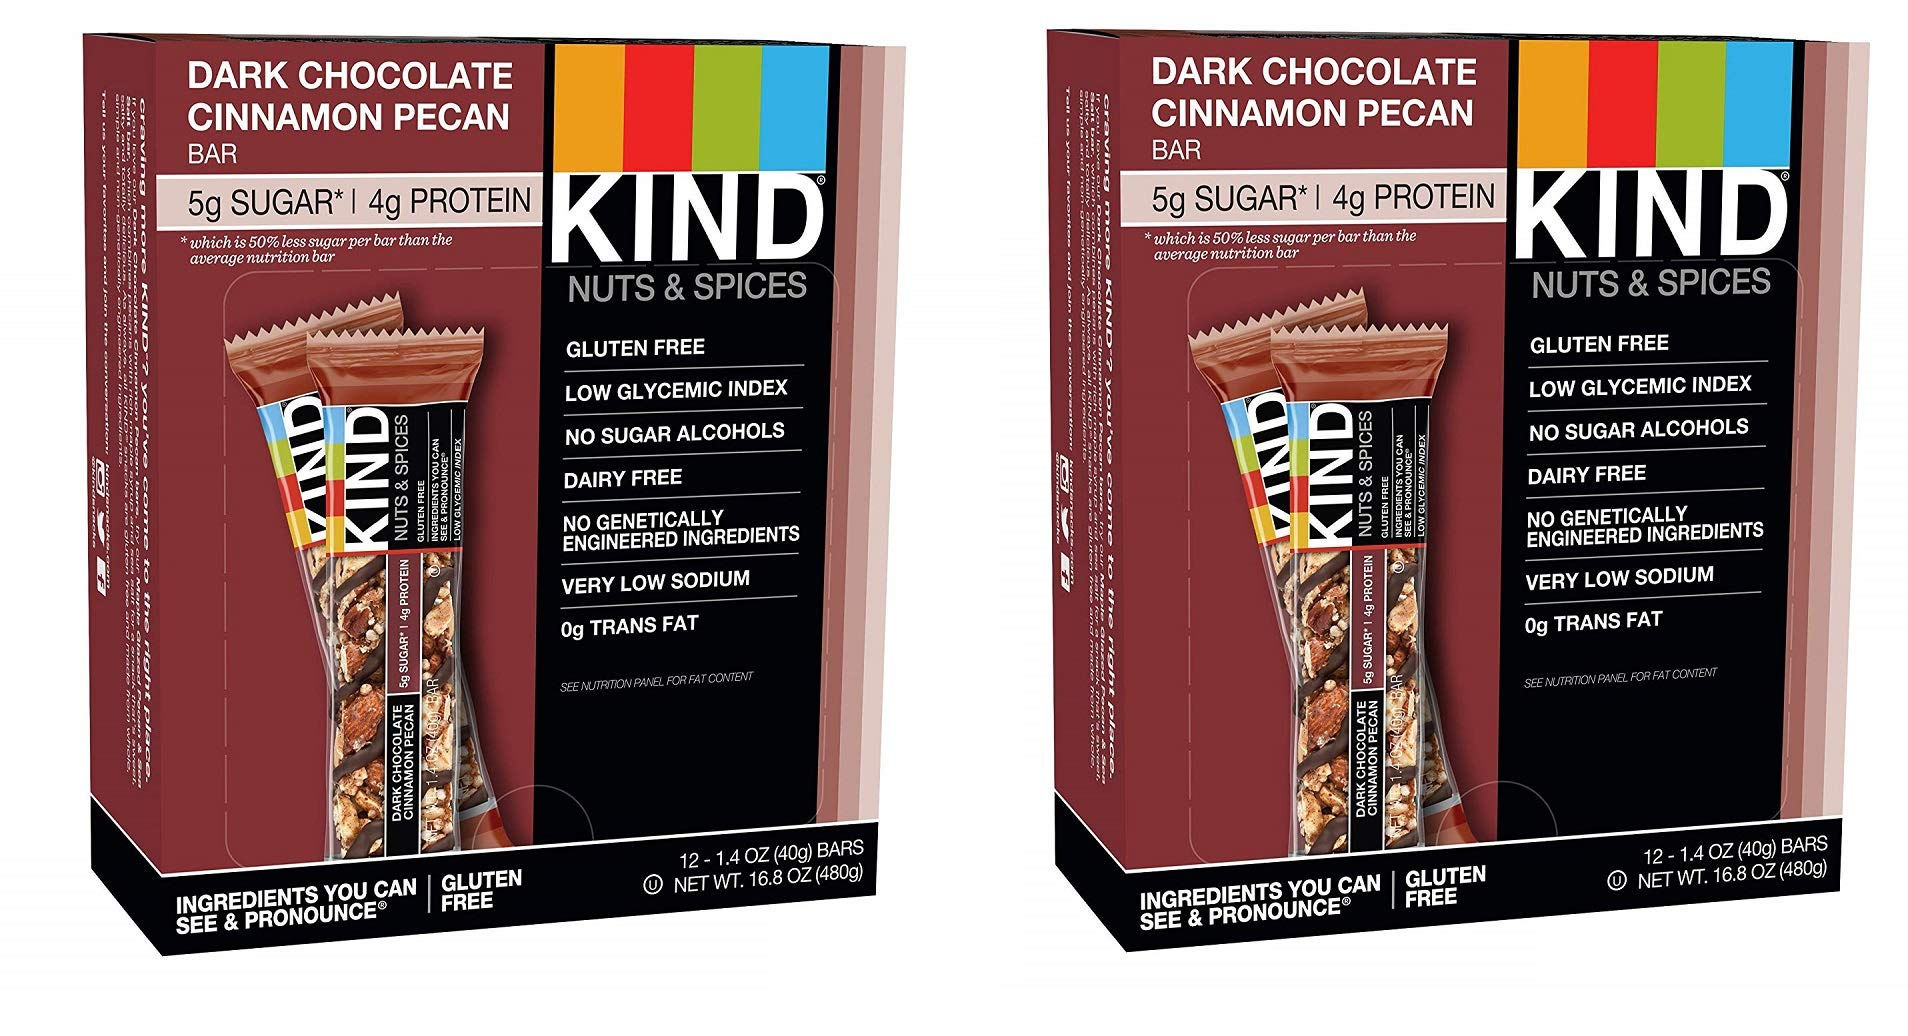 KIND Bars, Dark Chocolate Cinnamon Pecan, Gluten Free, Low Sugar, 1.4oz, 24 Bars